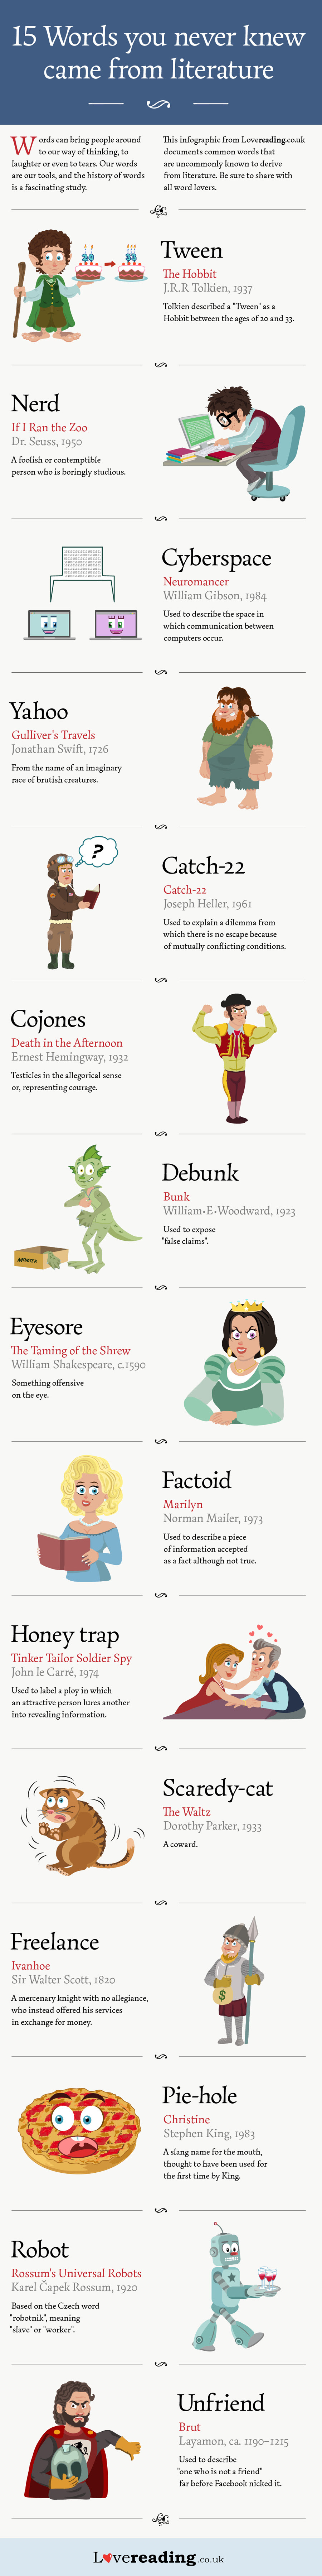 Awesome Visual on The Origins of 15 Commonly Used Words